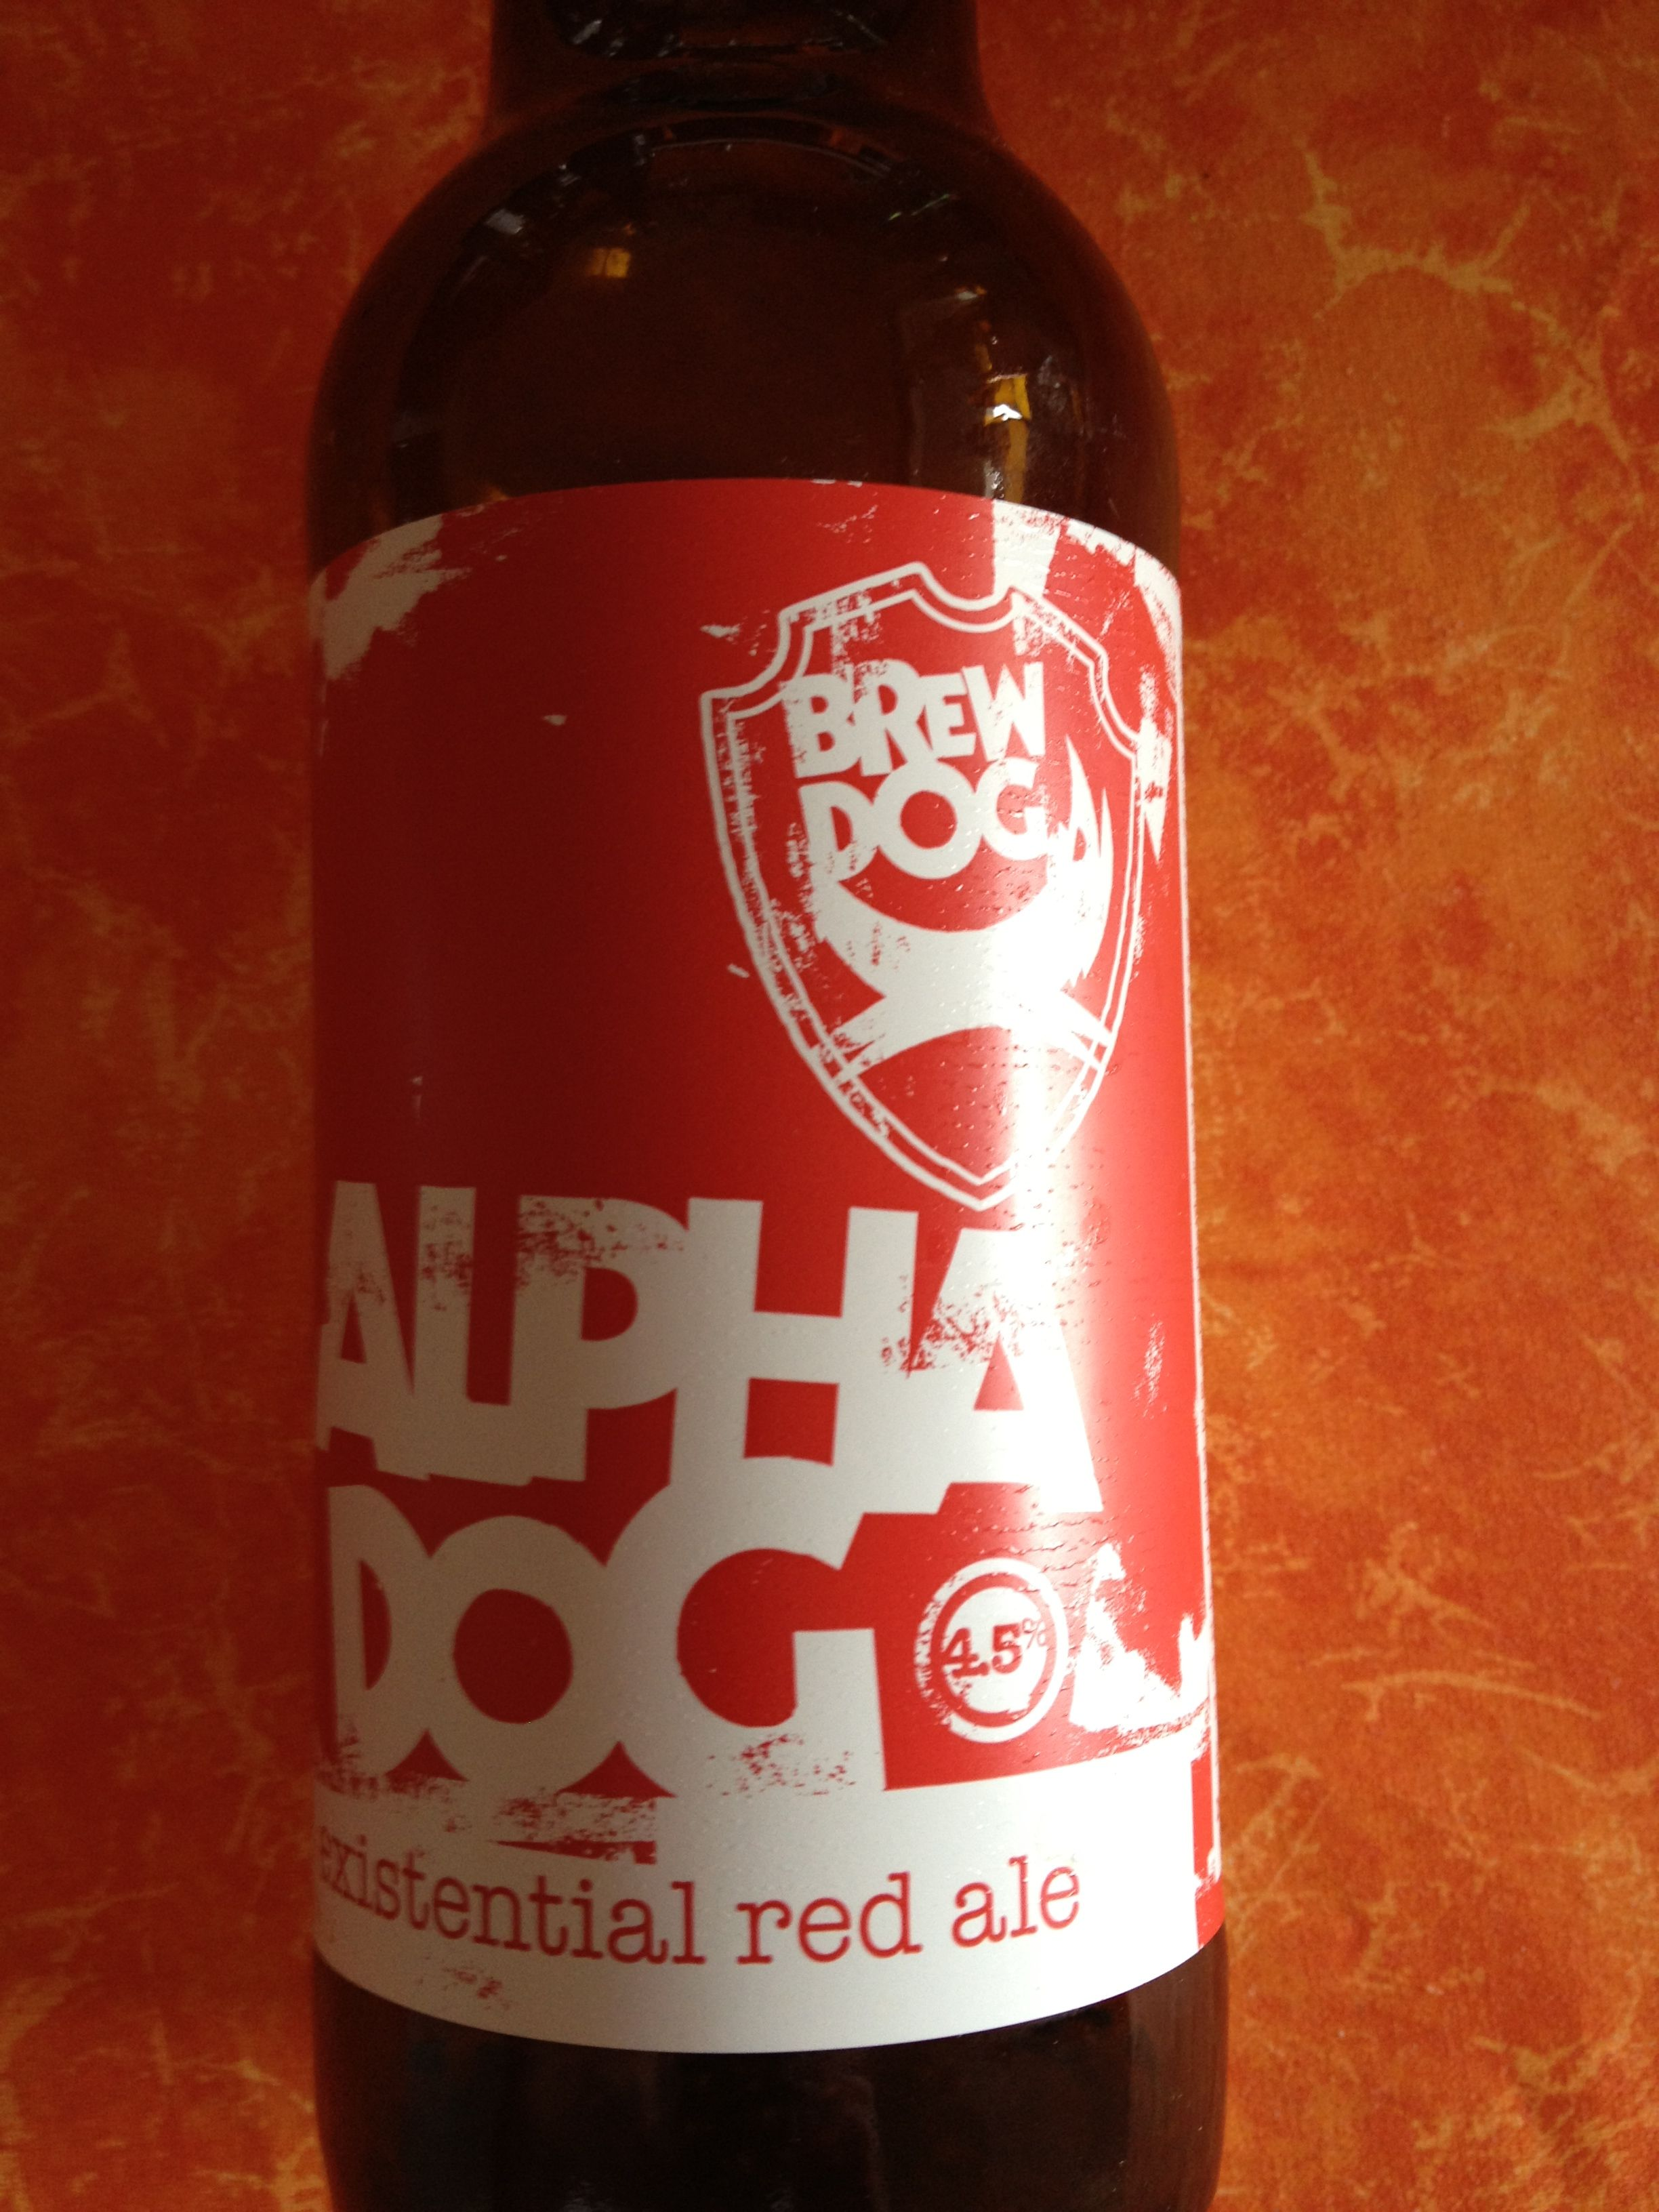 Brewdog Alpha Dog Formerly Brewed At Brewdog Style Bitter Ellon Aberdeenshire Scotland Beer Collection Wine Bottle Beer